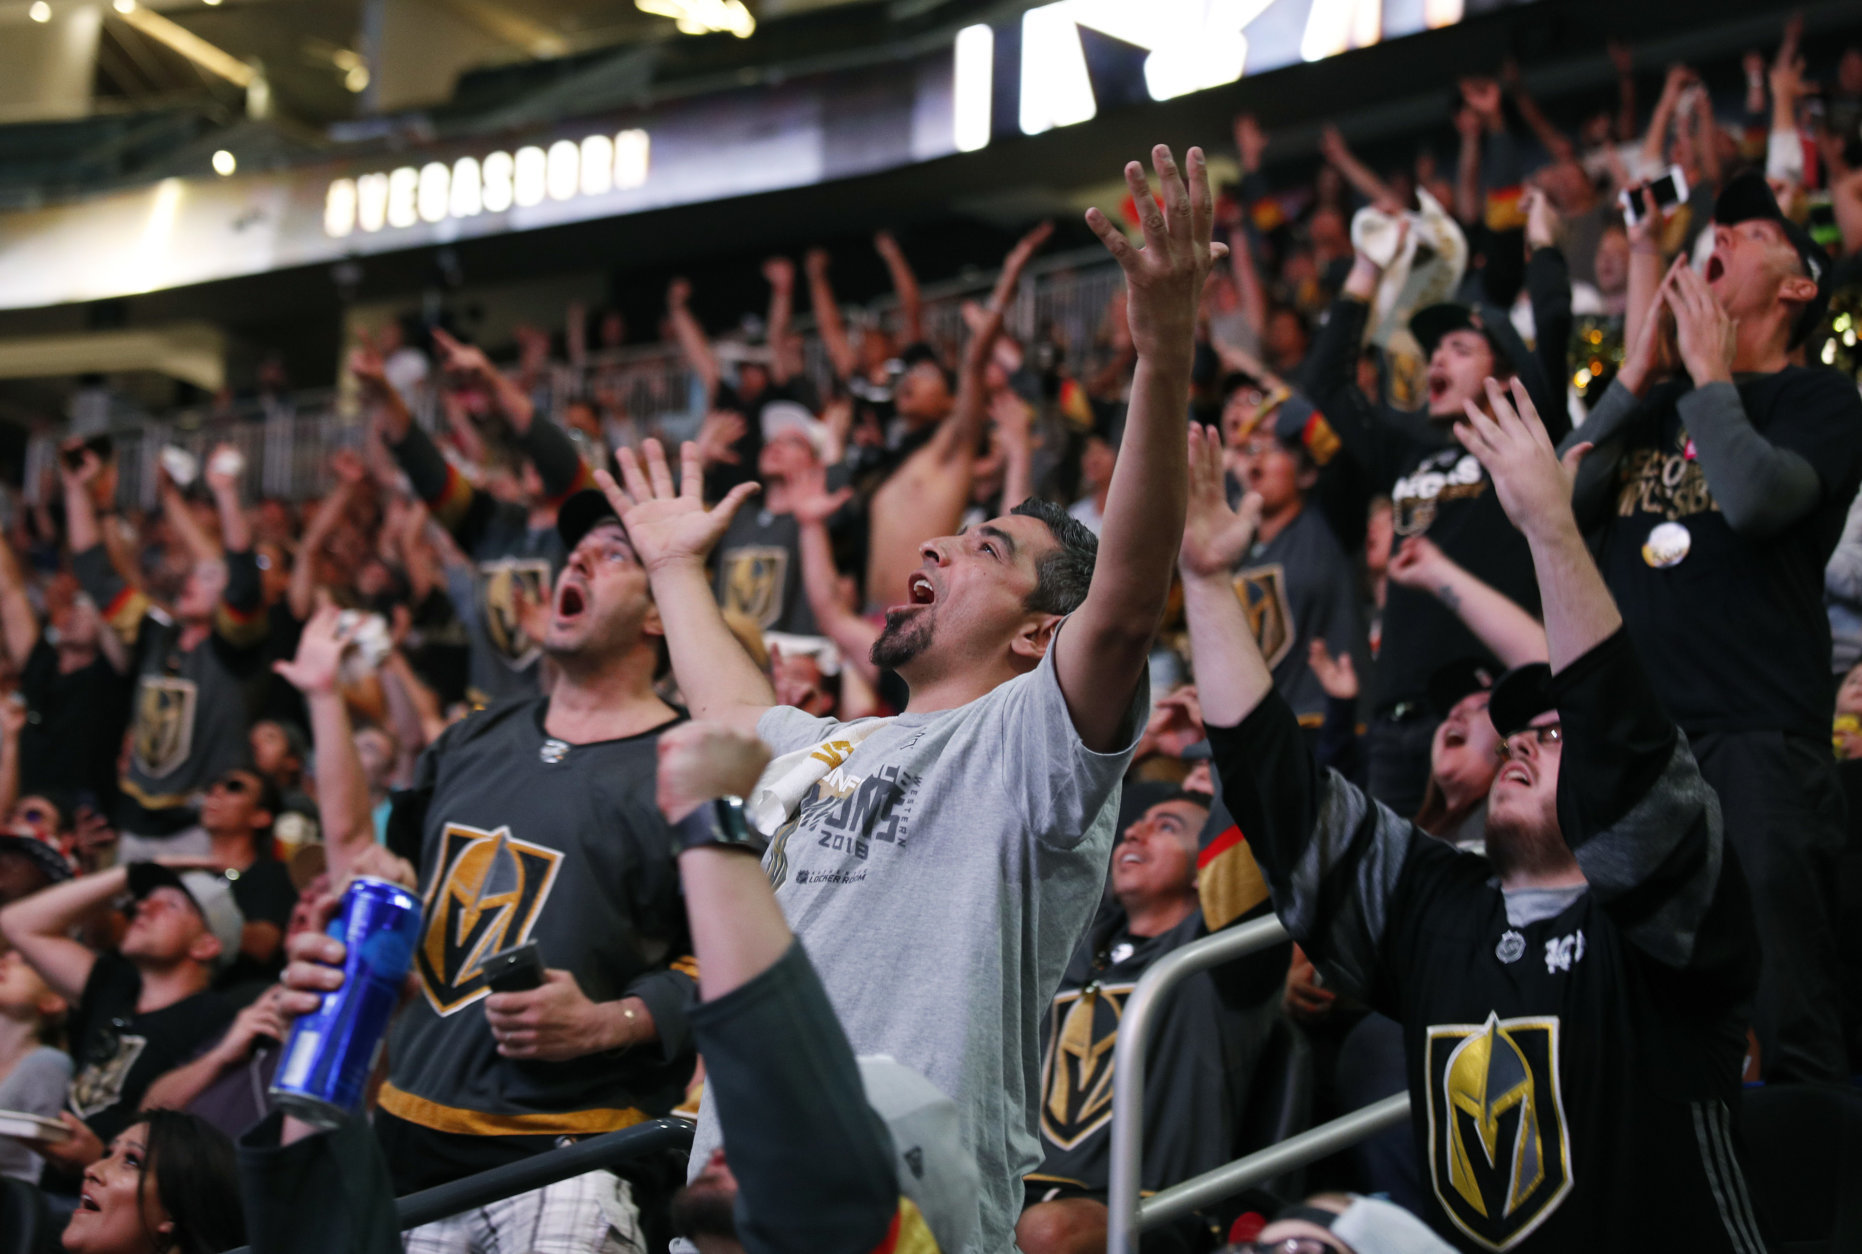 Fans cheer during a watch party for Game 4 of the NHL hockey Stanley Cup Final between the Washington Capitals and the Vegas Golden Knights, Monday, June 4, 2018, in Las Vegas. (AP Photo/John Locher)